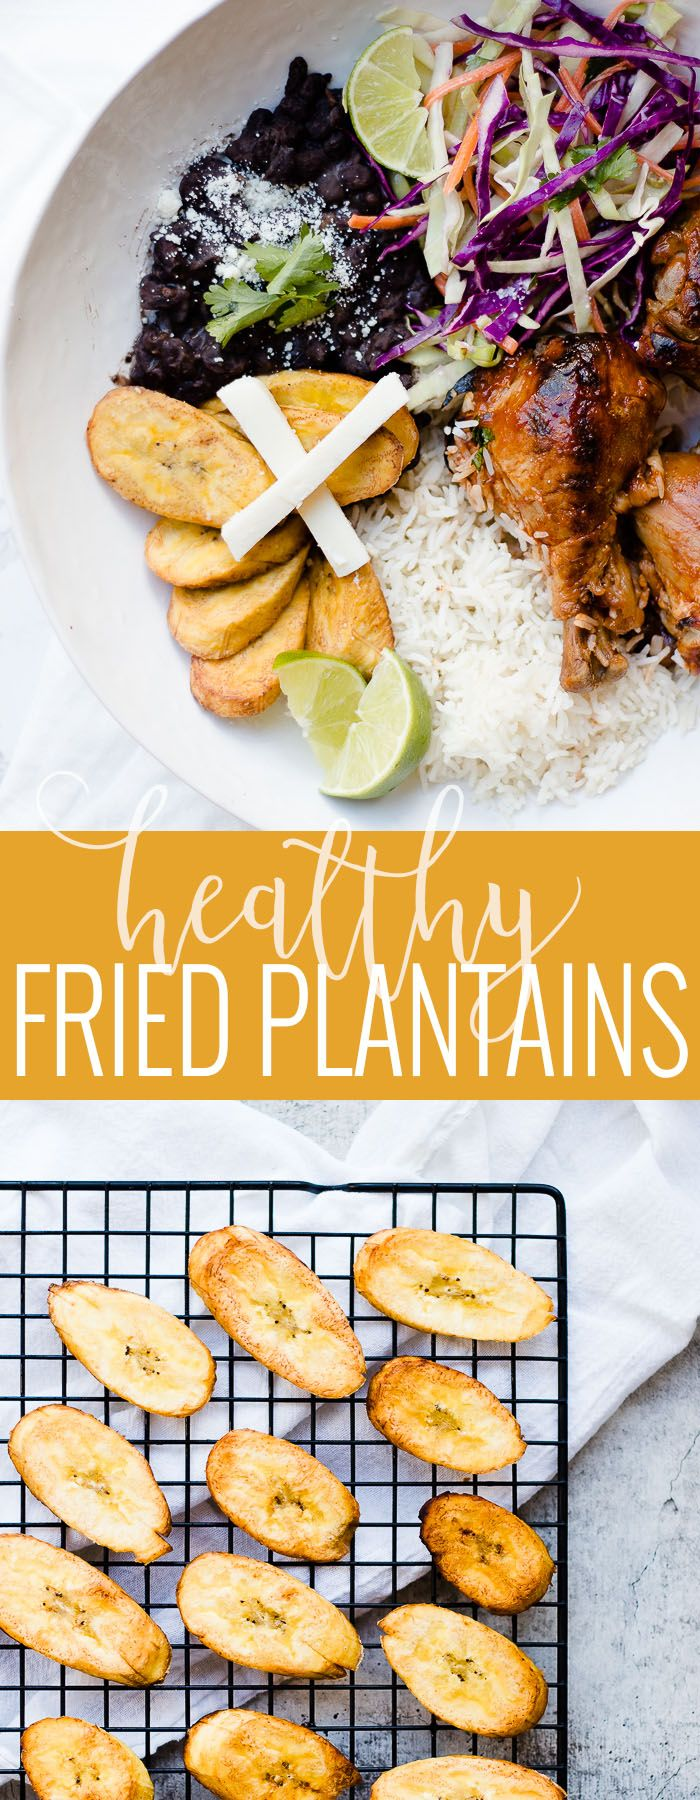 Healthy Fried Plantains | Costa Rican fried plantains | sweet fried plantains | how to fry plantains | Costa Rican inspired recipes || Oh So Delicioso #friedplantains #costaricanrecipe #plantain